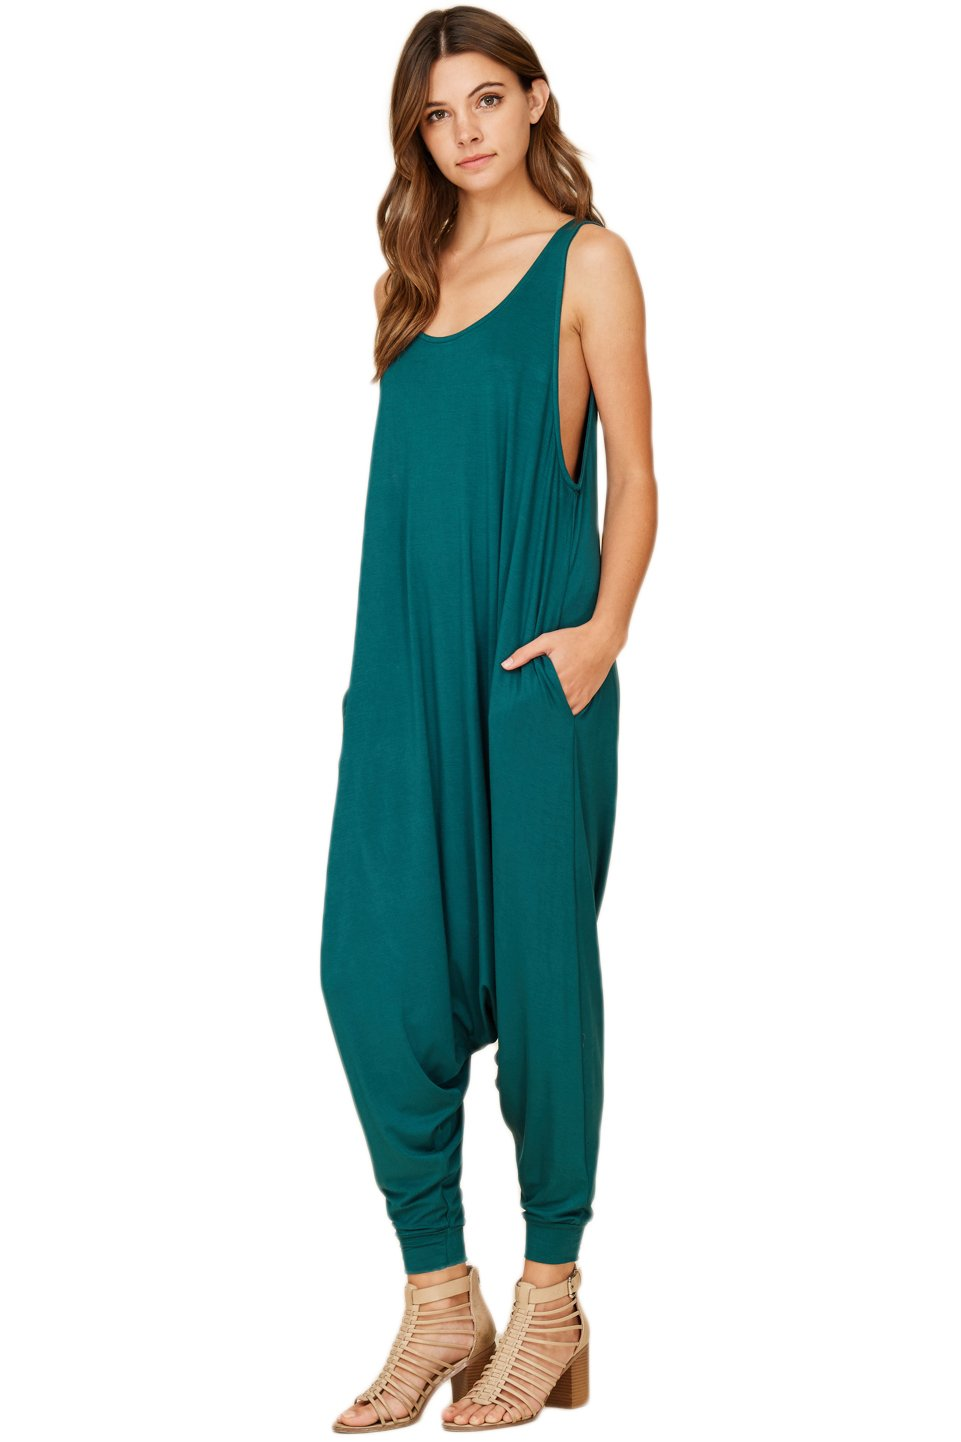 Annabelle Women's Comfy Rayon Solid Color Sleeveless Harem Jumpsuits J8004